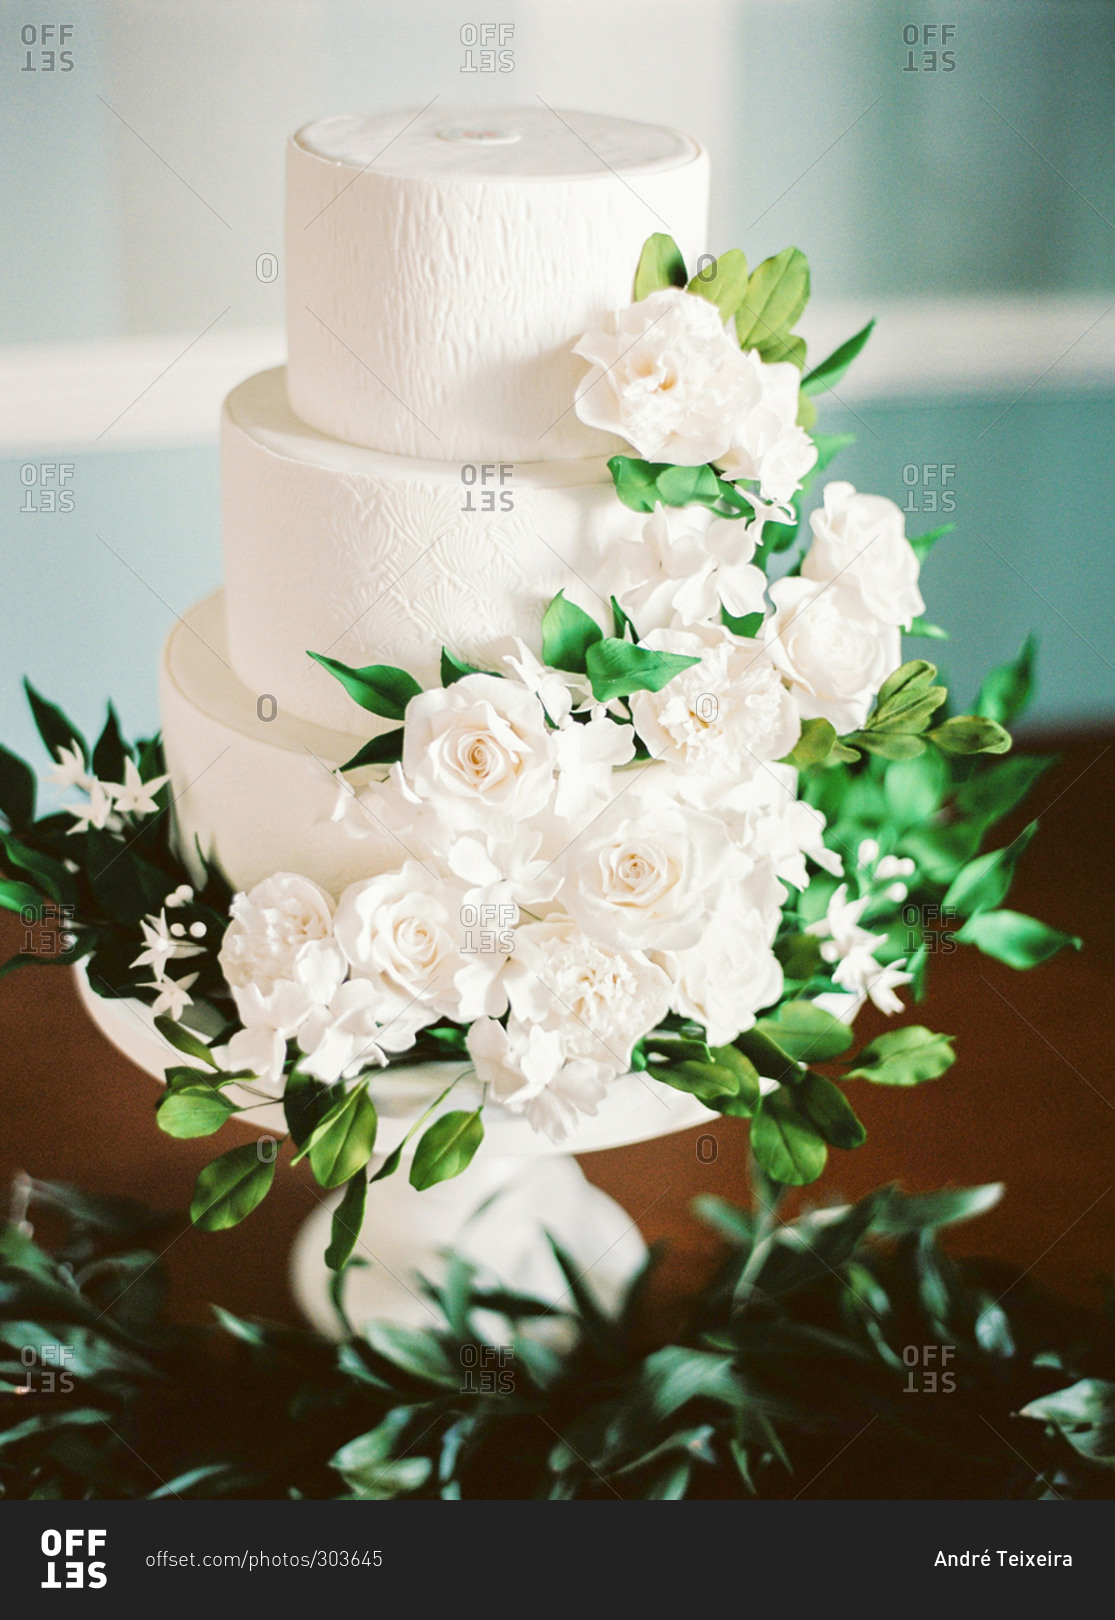 wedding cake with green leaves wedding cake decorated with white flowers and green leaves 26903